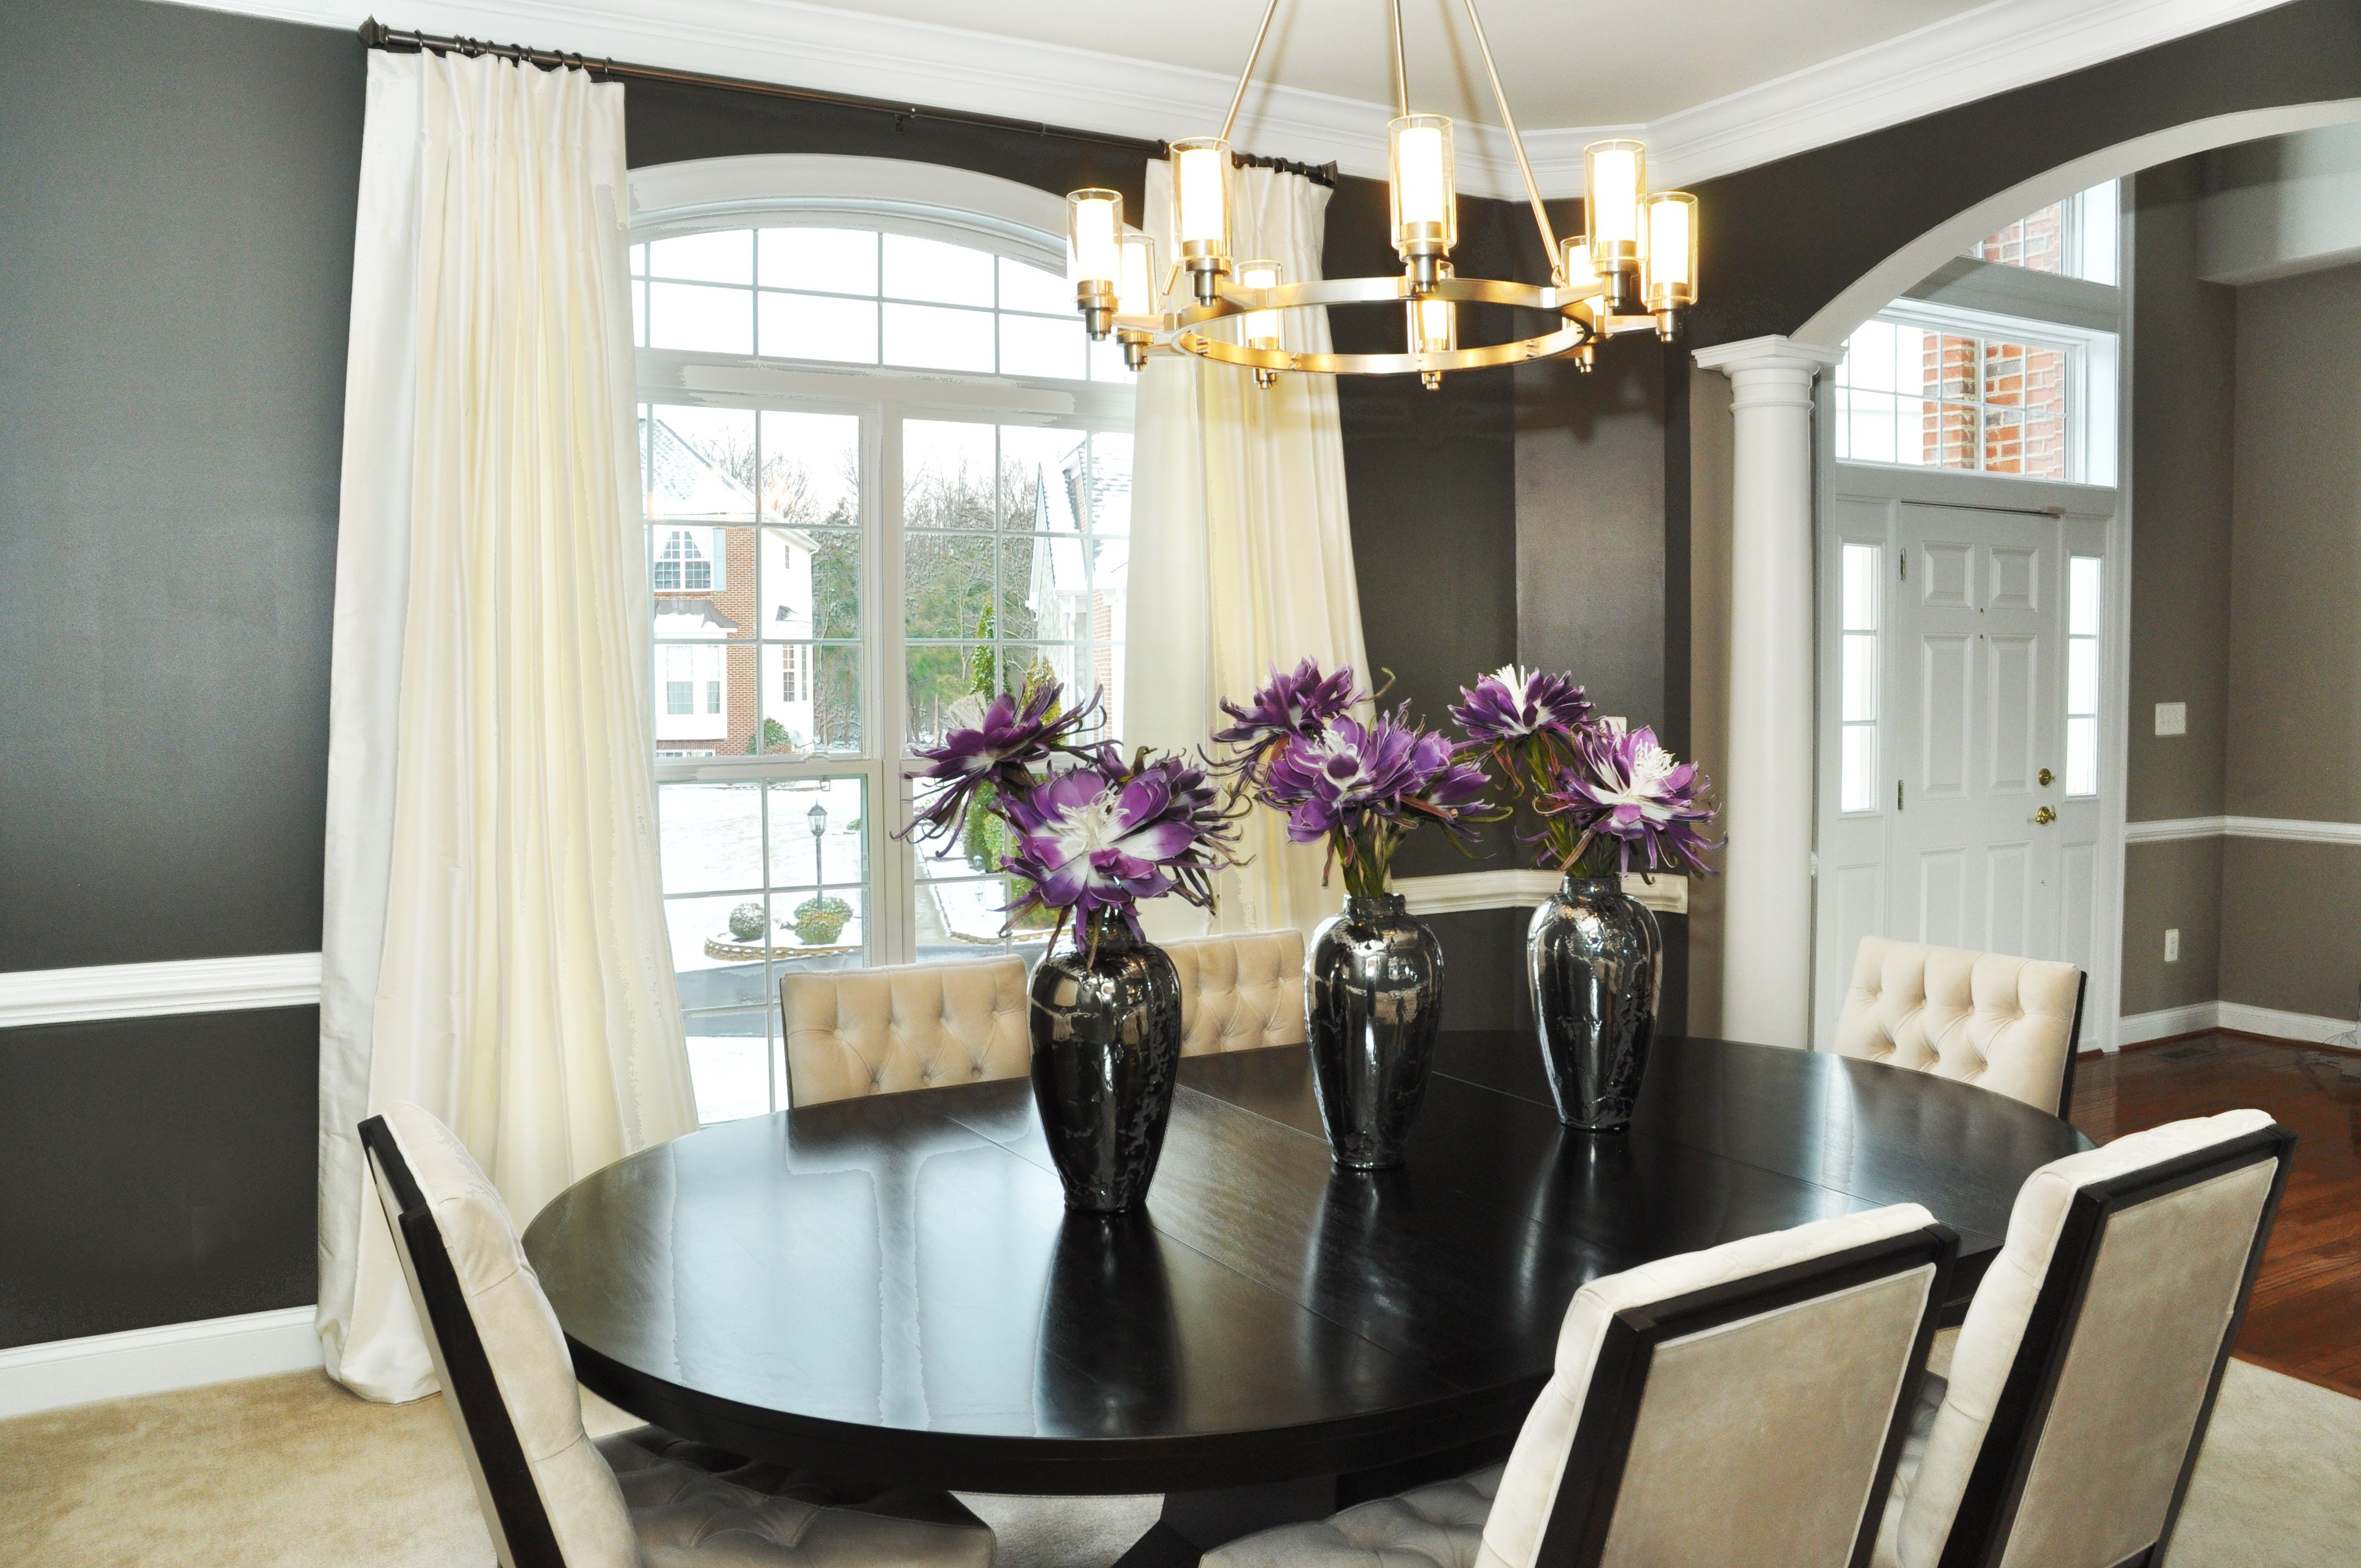 Lovely Elegant Black Wooden Oval Dining Table Feat White Tufted Dining Chairs And  White Wall Curtain Windows